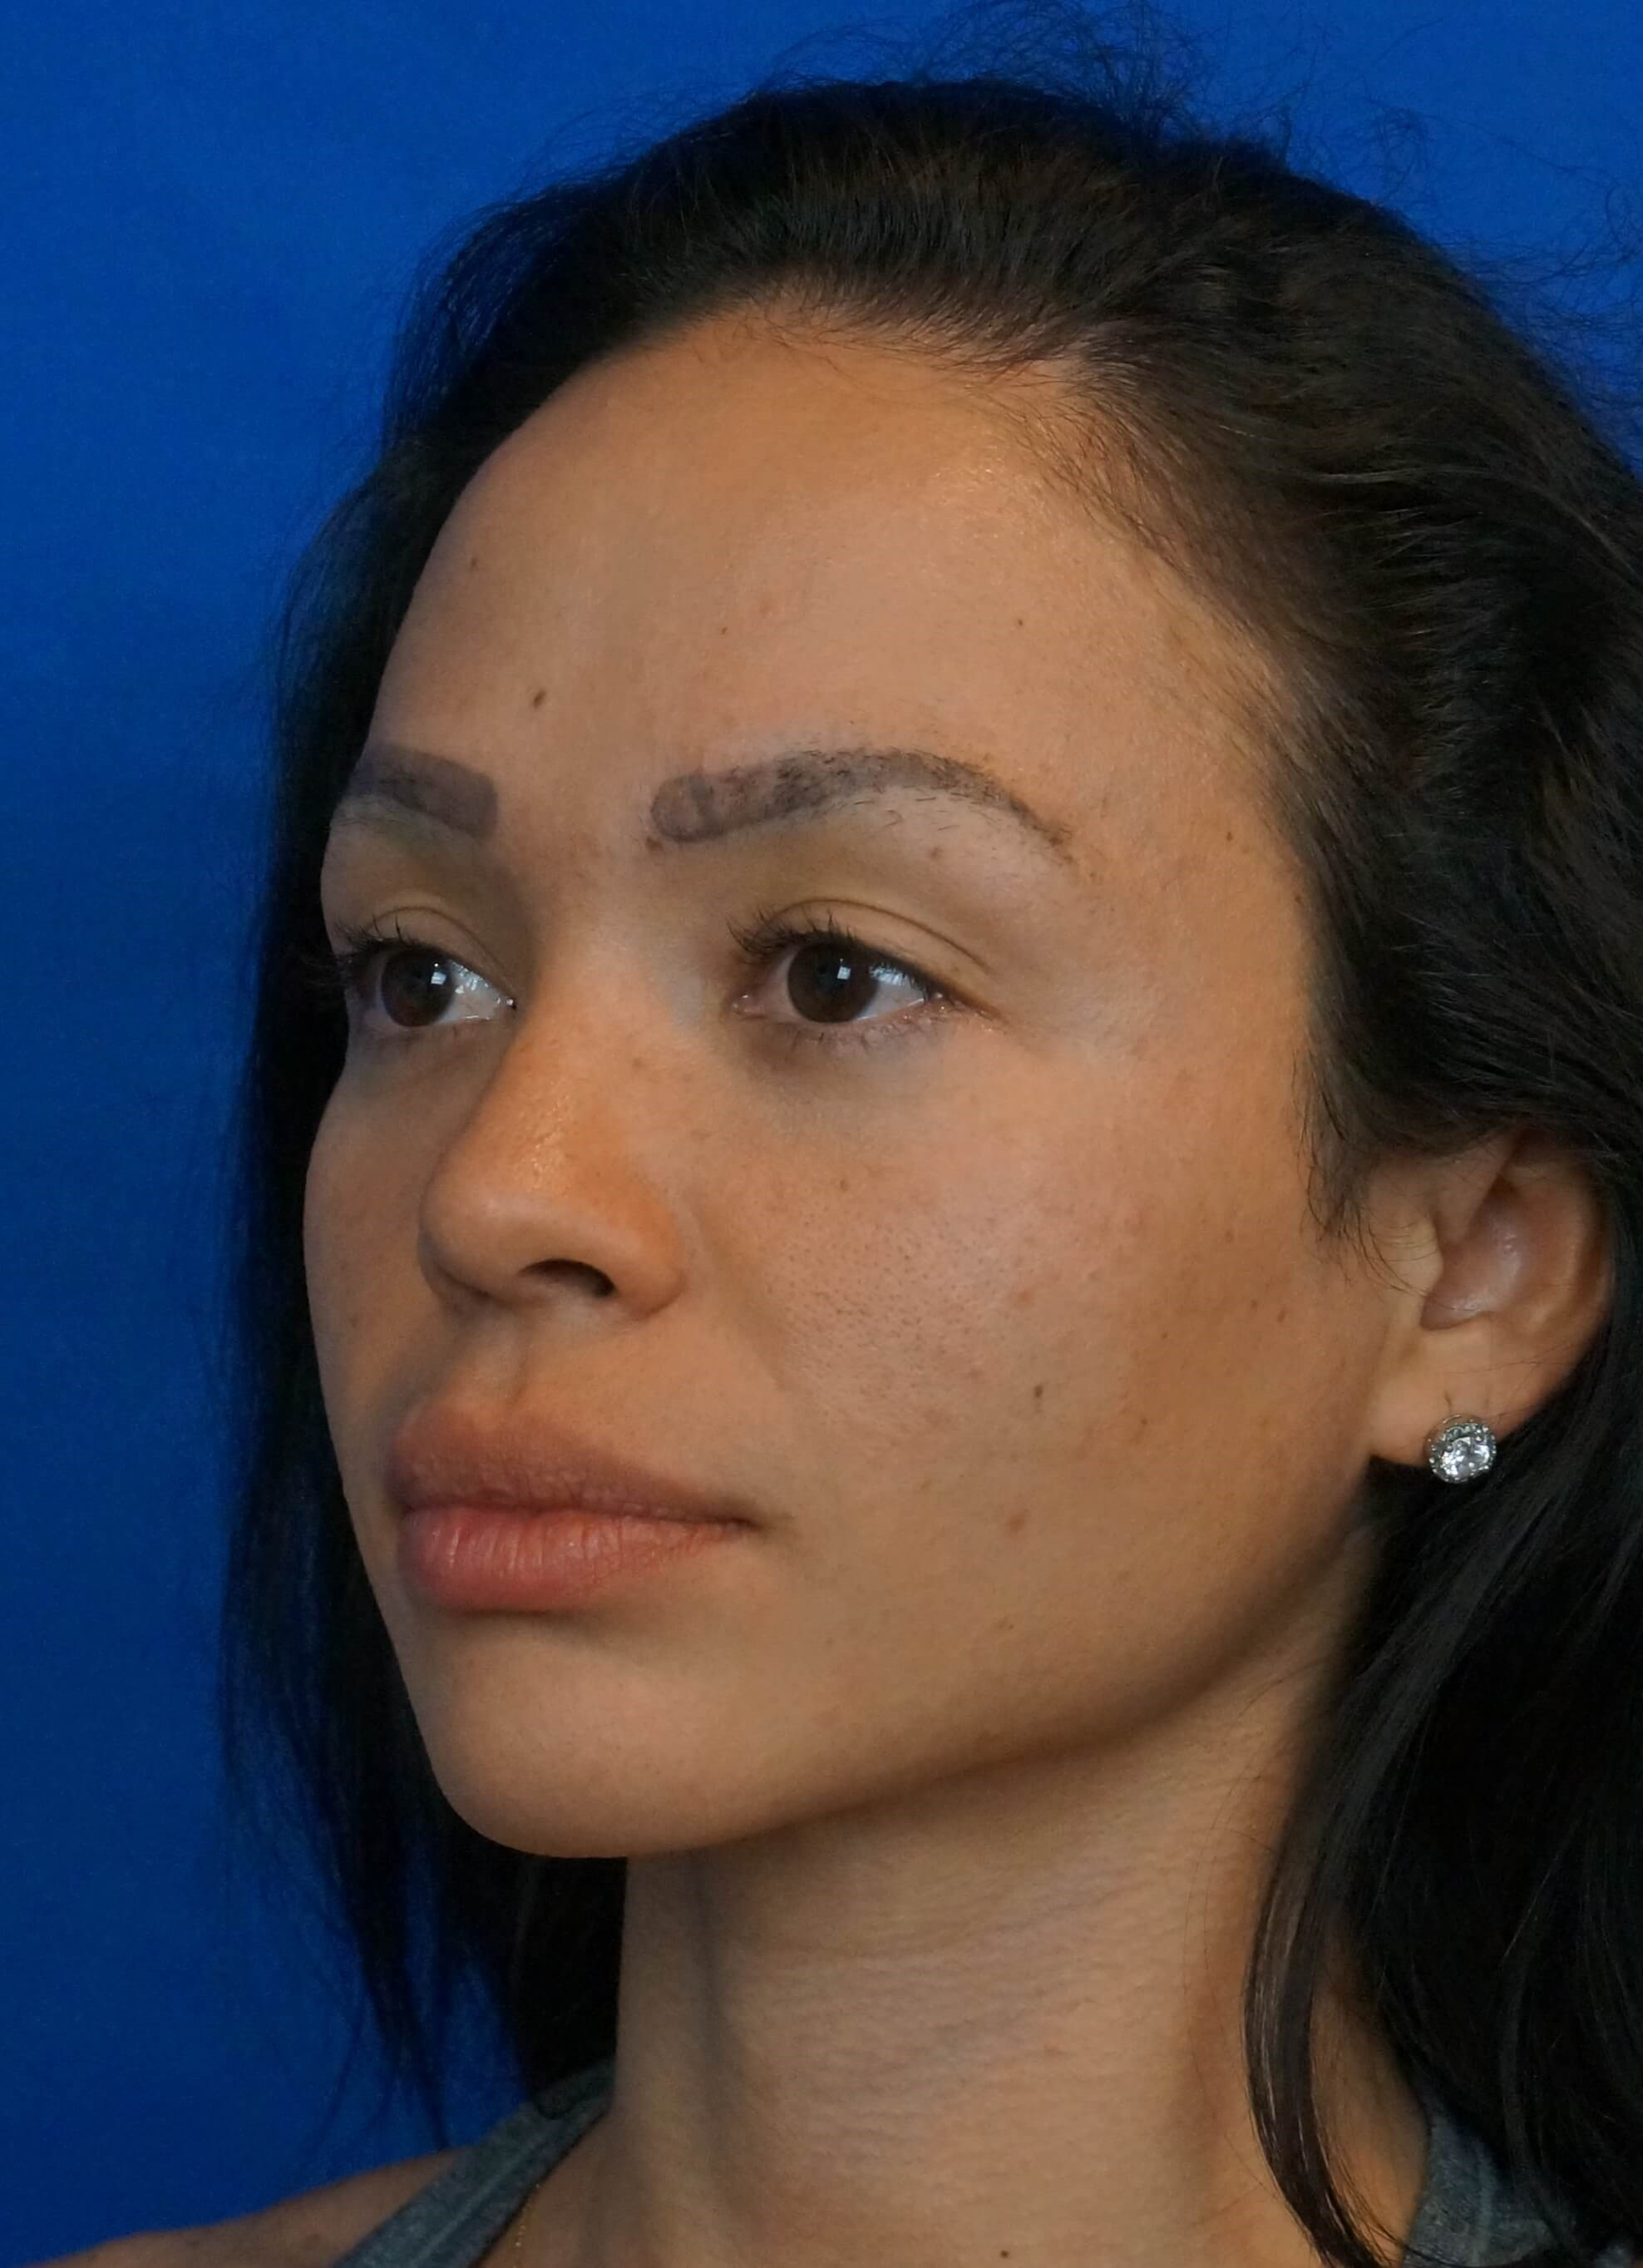 Rhinoplasty Surgeon Las Vegas Rhinoplasty After Picture